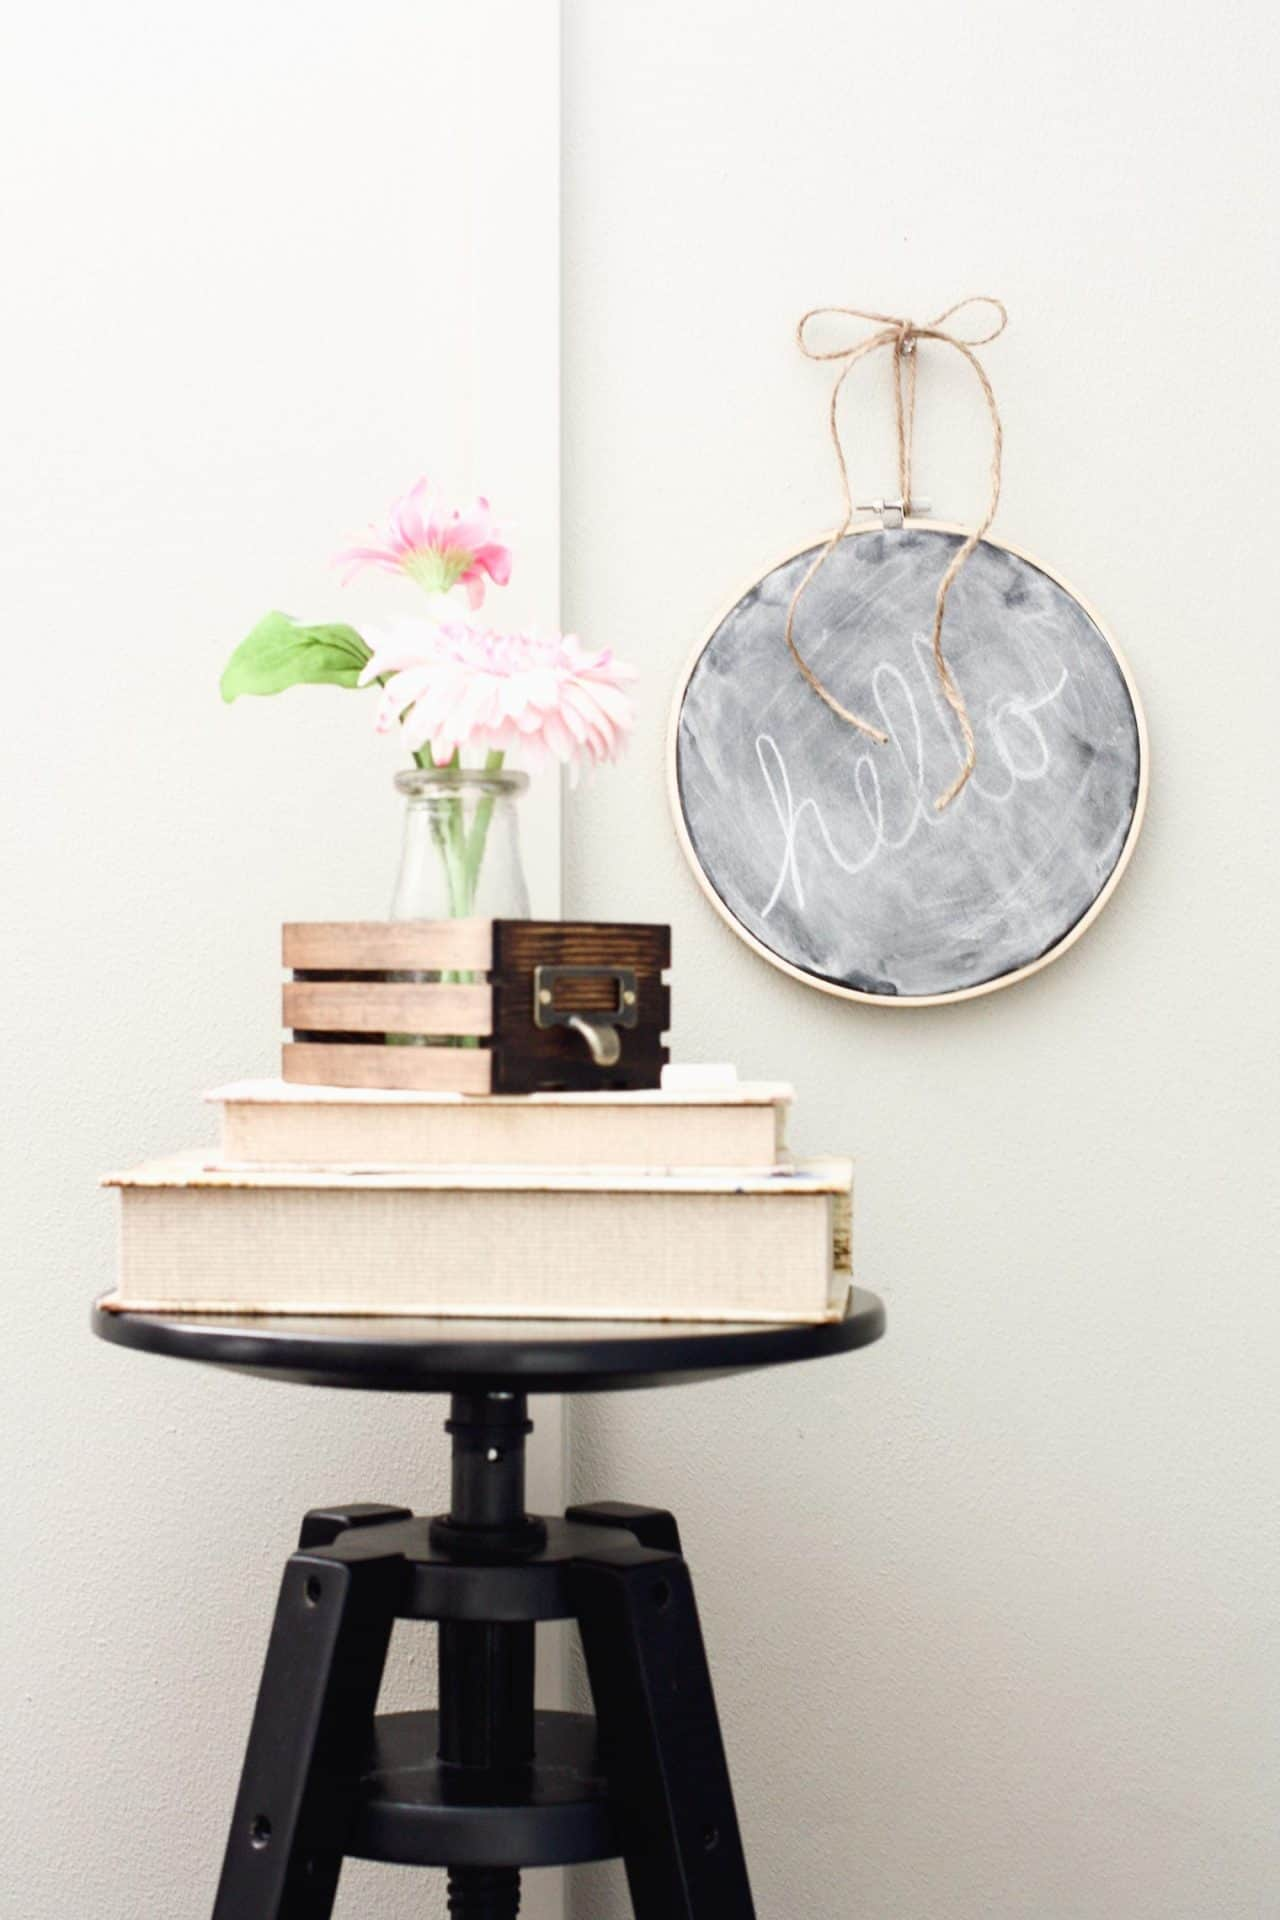 stack of books on a stool, mini crate with pink flower, embroidery hoop chalkboard hanging on wall behind